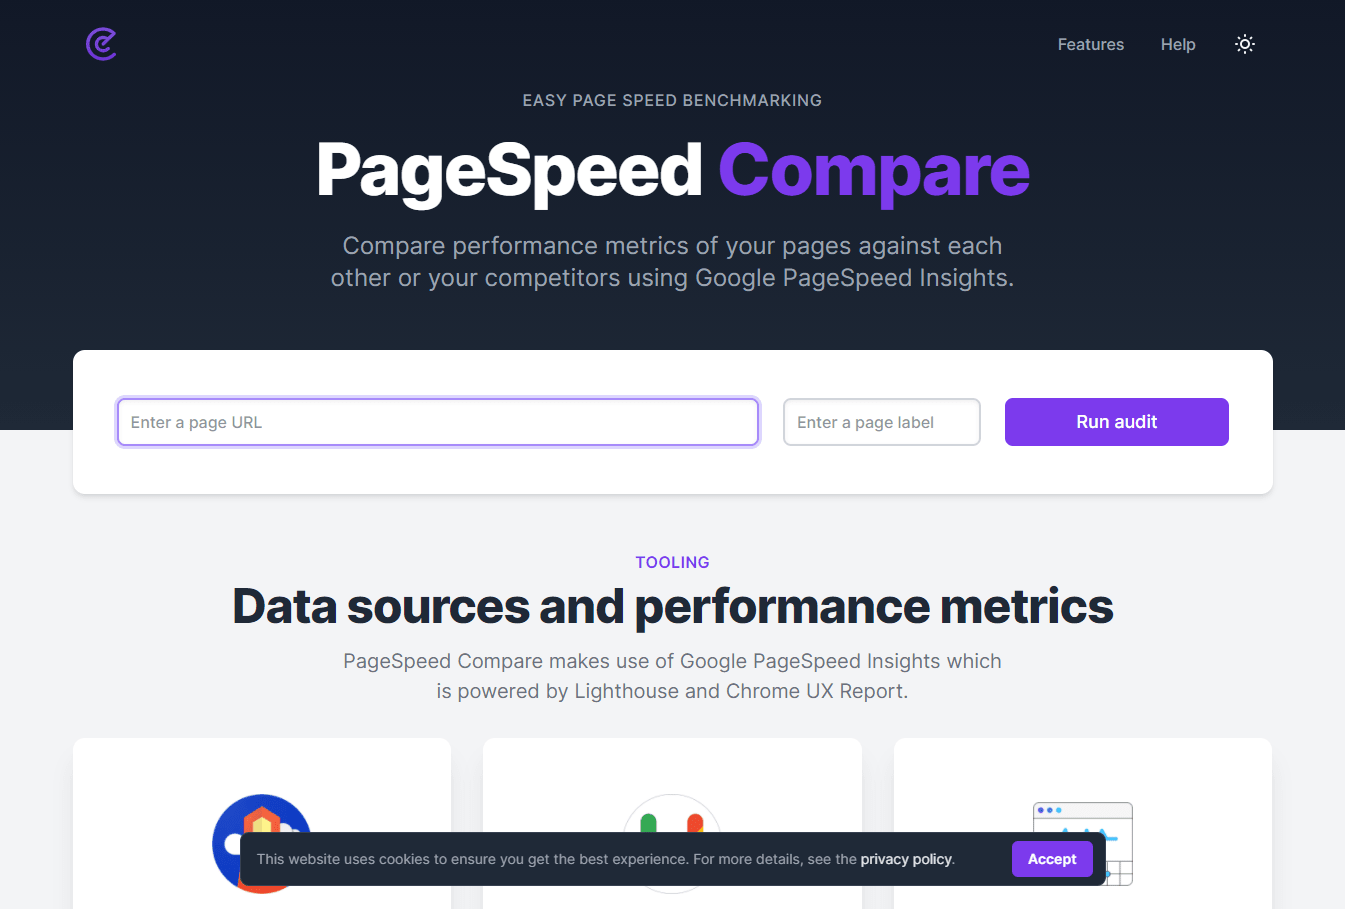 PageSpeed Compare Screenshot